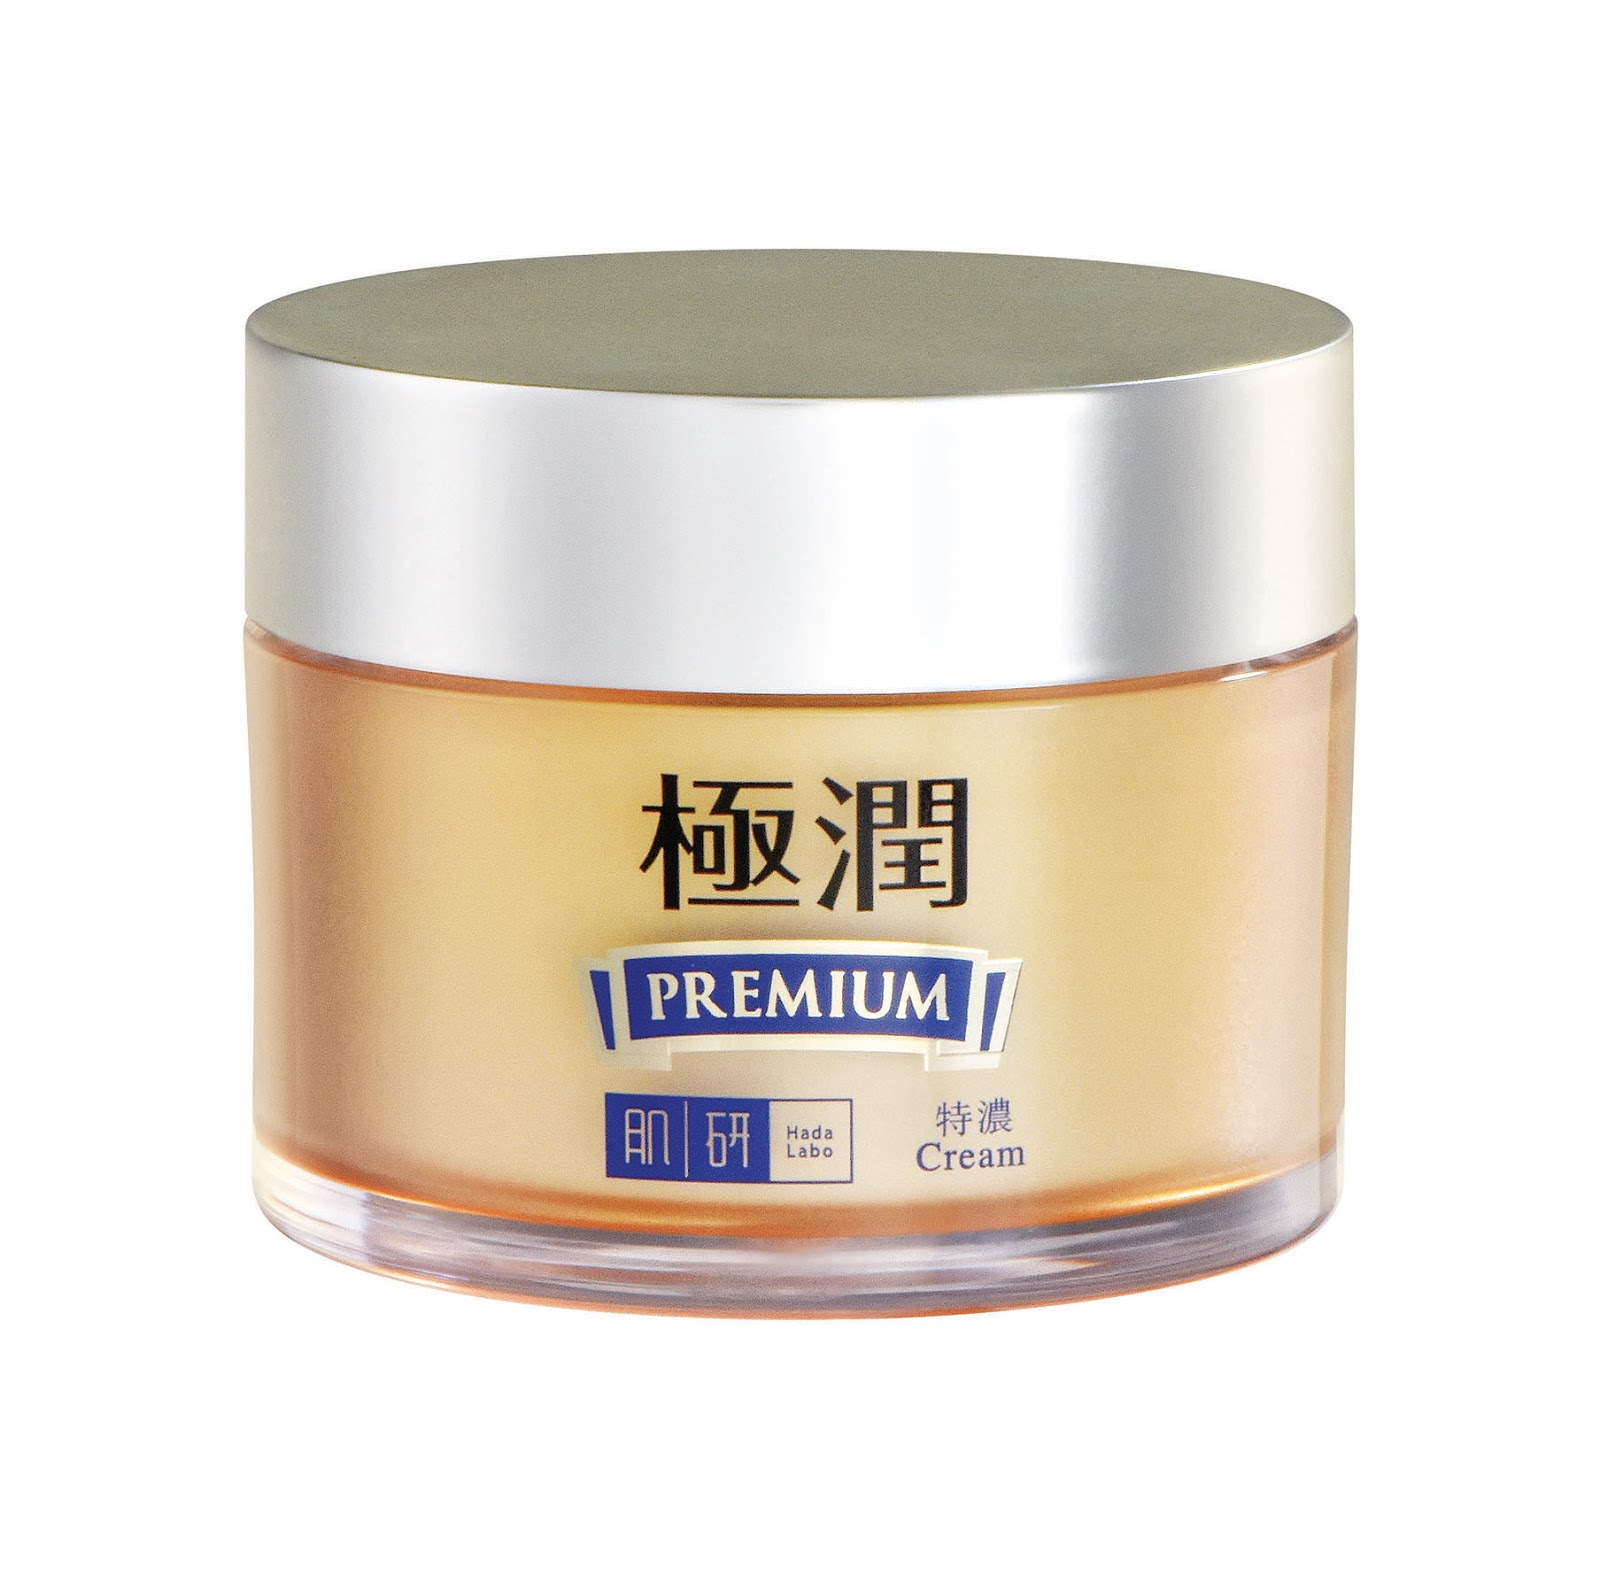 Hada Labo Premium Hydrating Cream Night